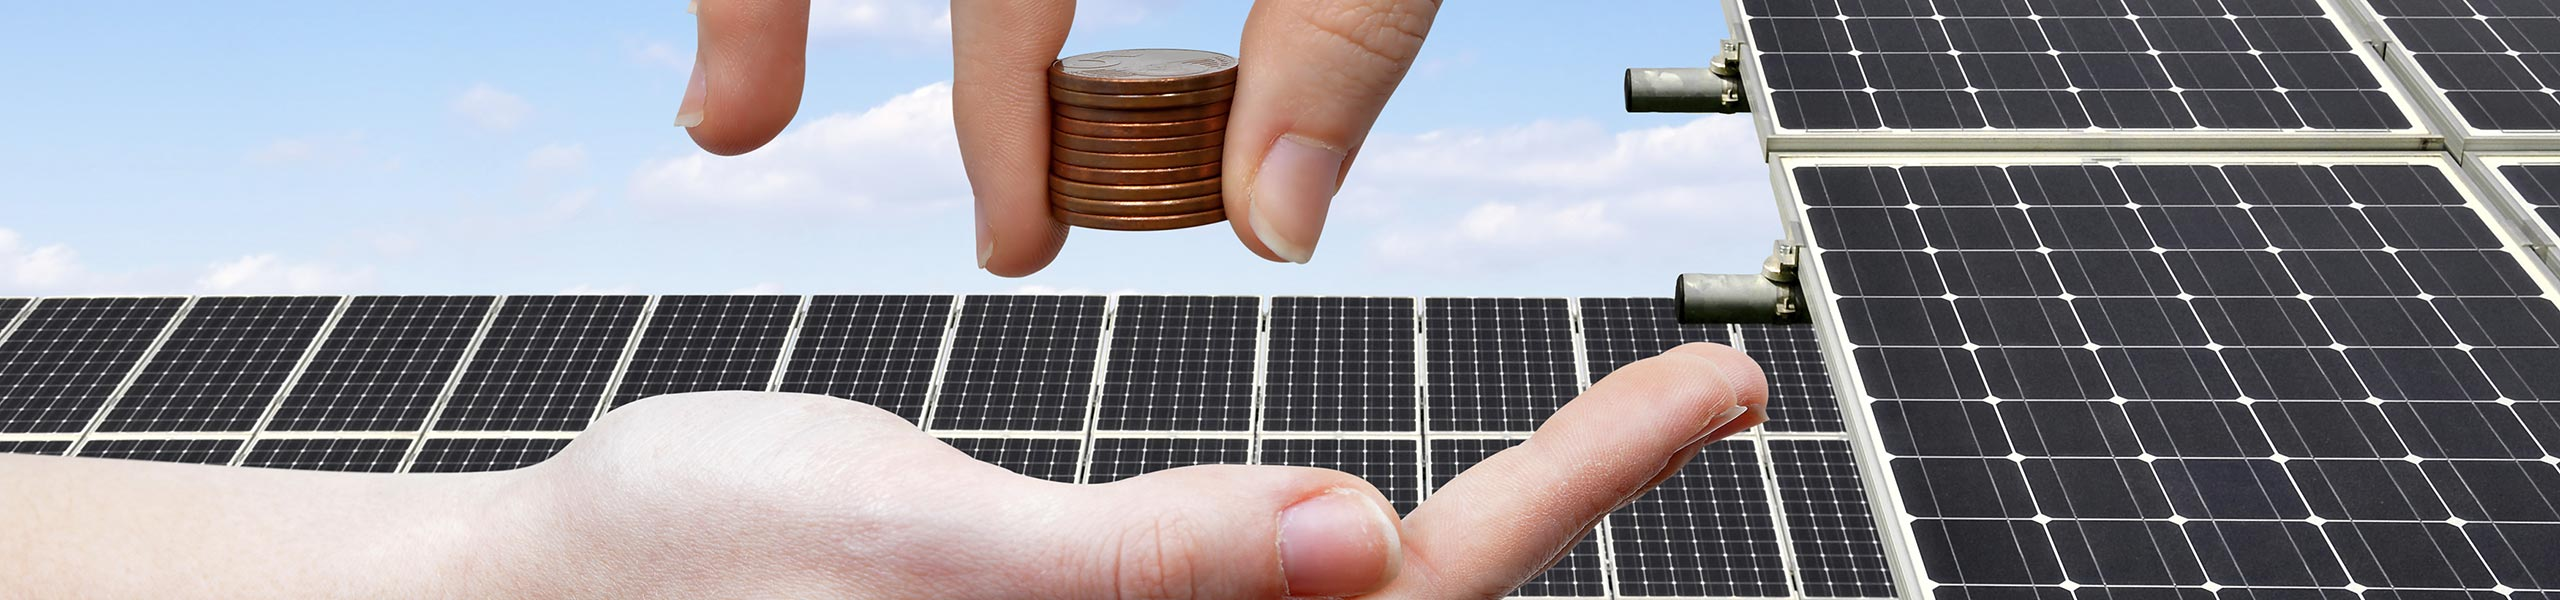 The Real Value of Investing in Solar Power